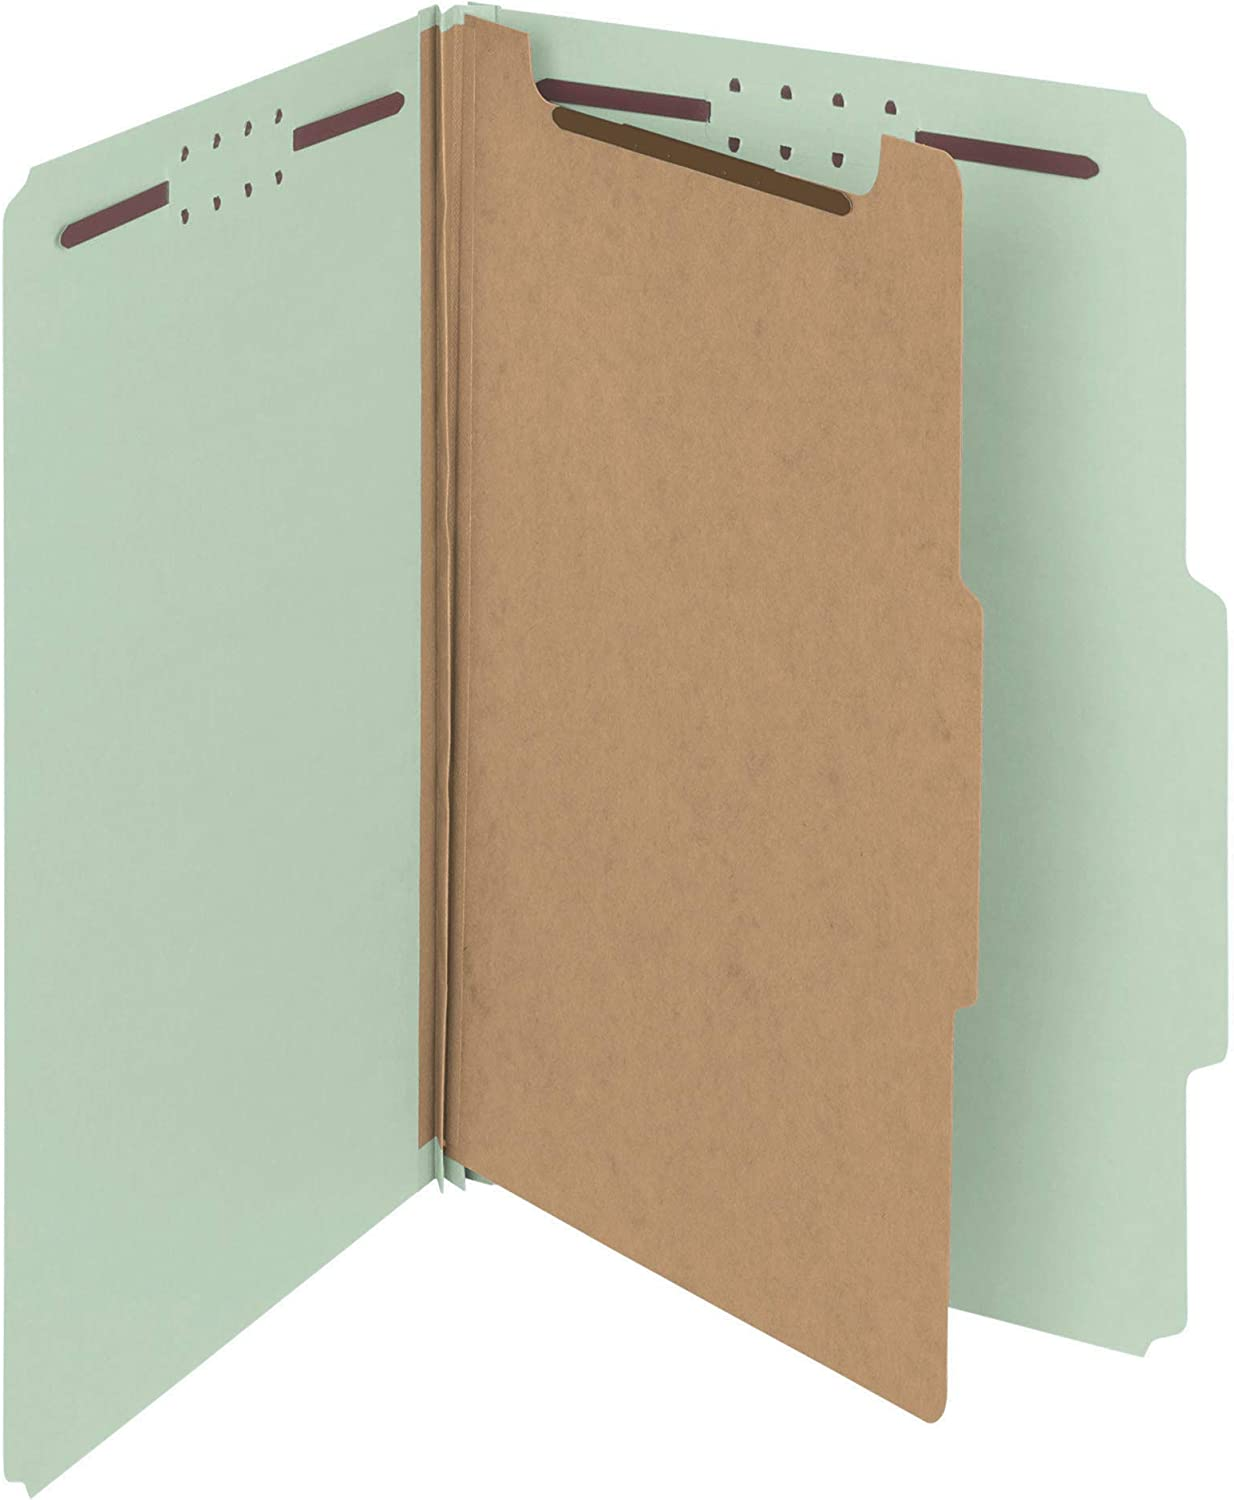 """Smead 100% Recycled Pressboard Classification File Folder, 1 Divider, 2"""" Expansion, Legal Size, Gray/Green, 10 per Box (18722)"""